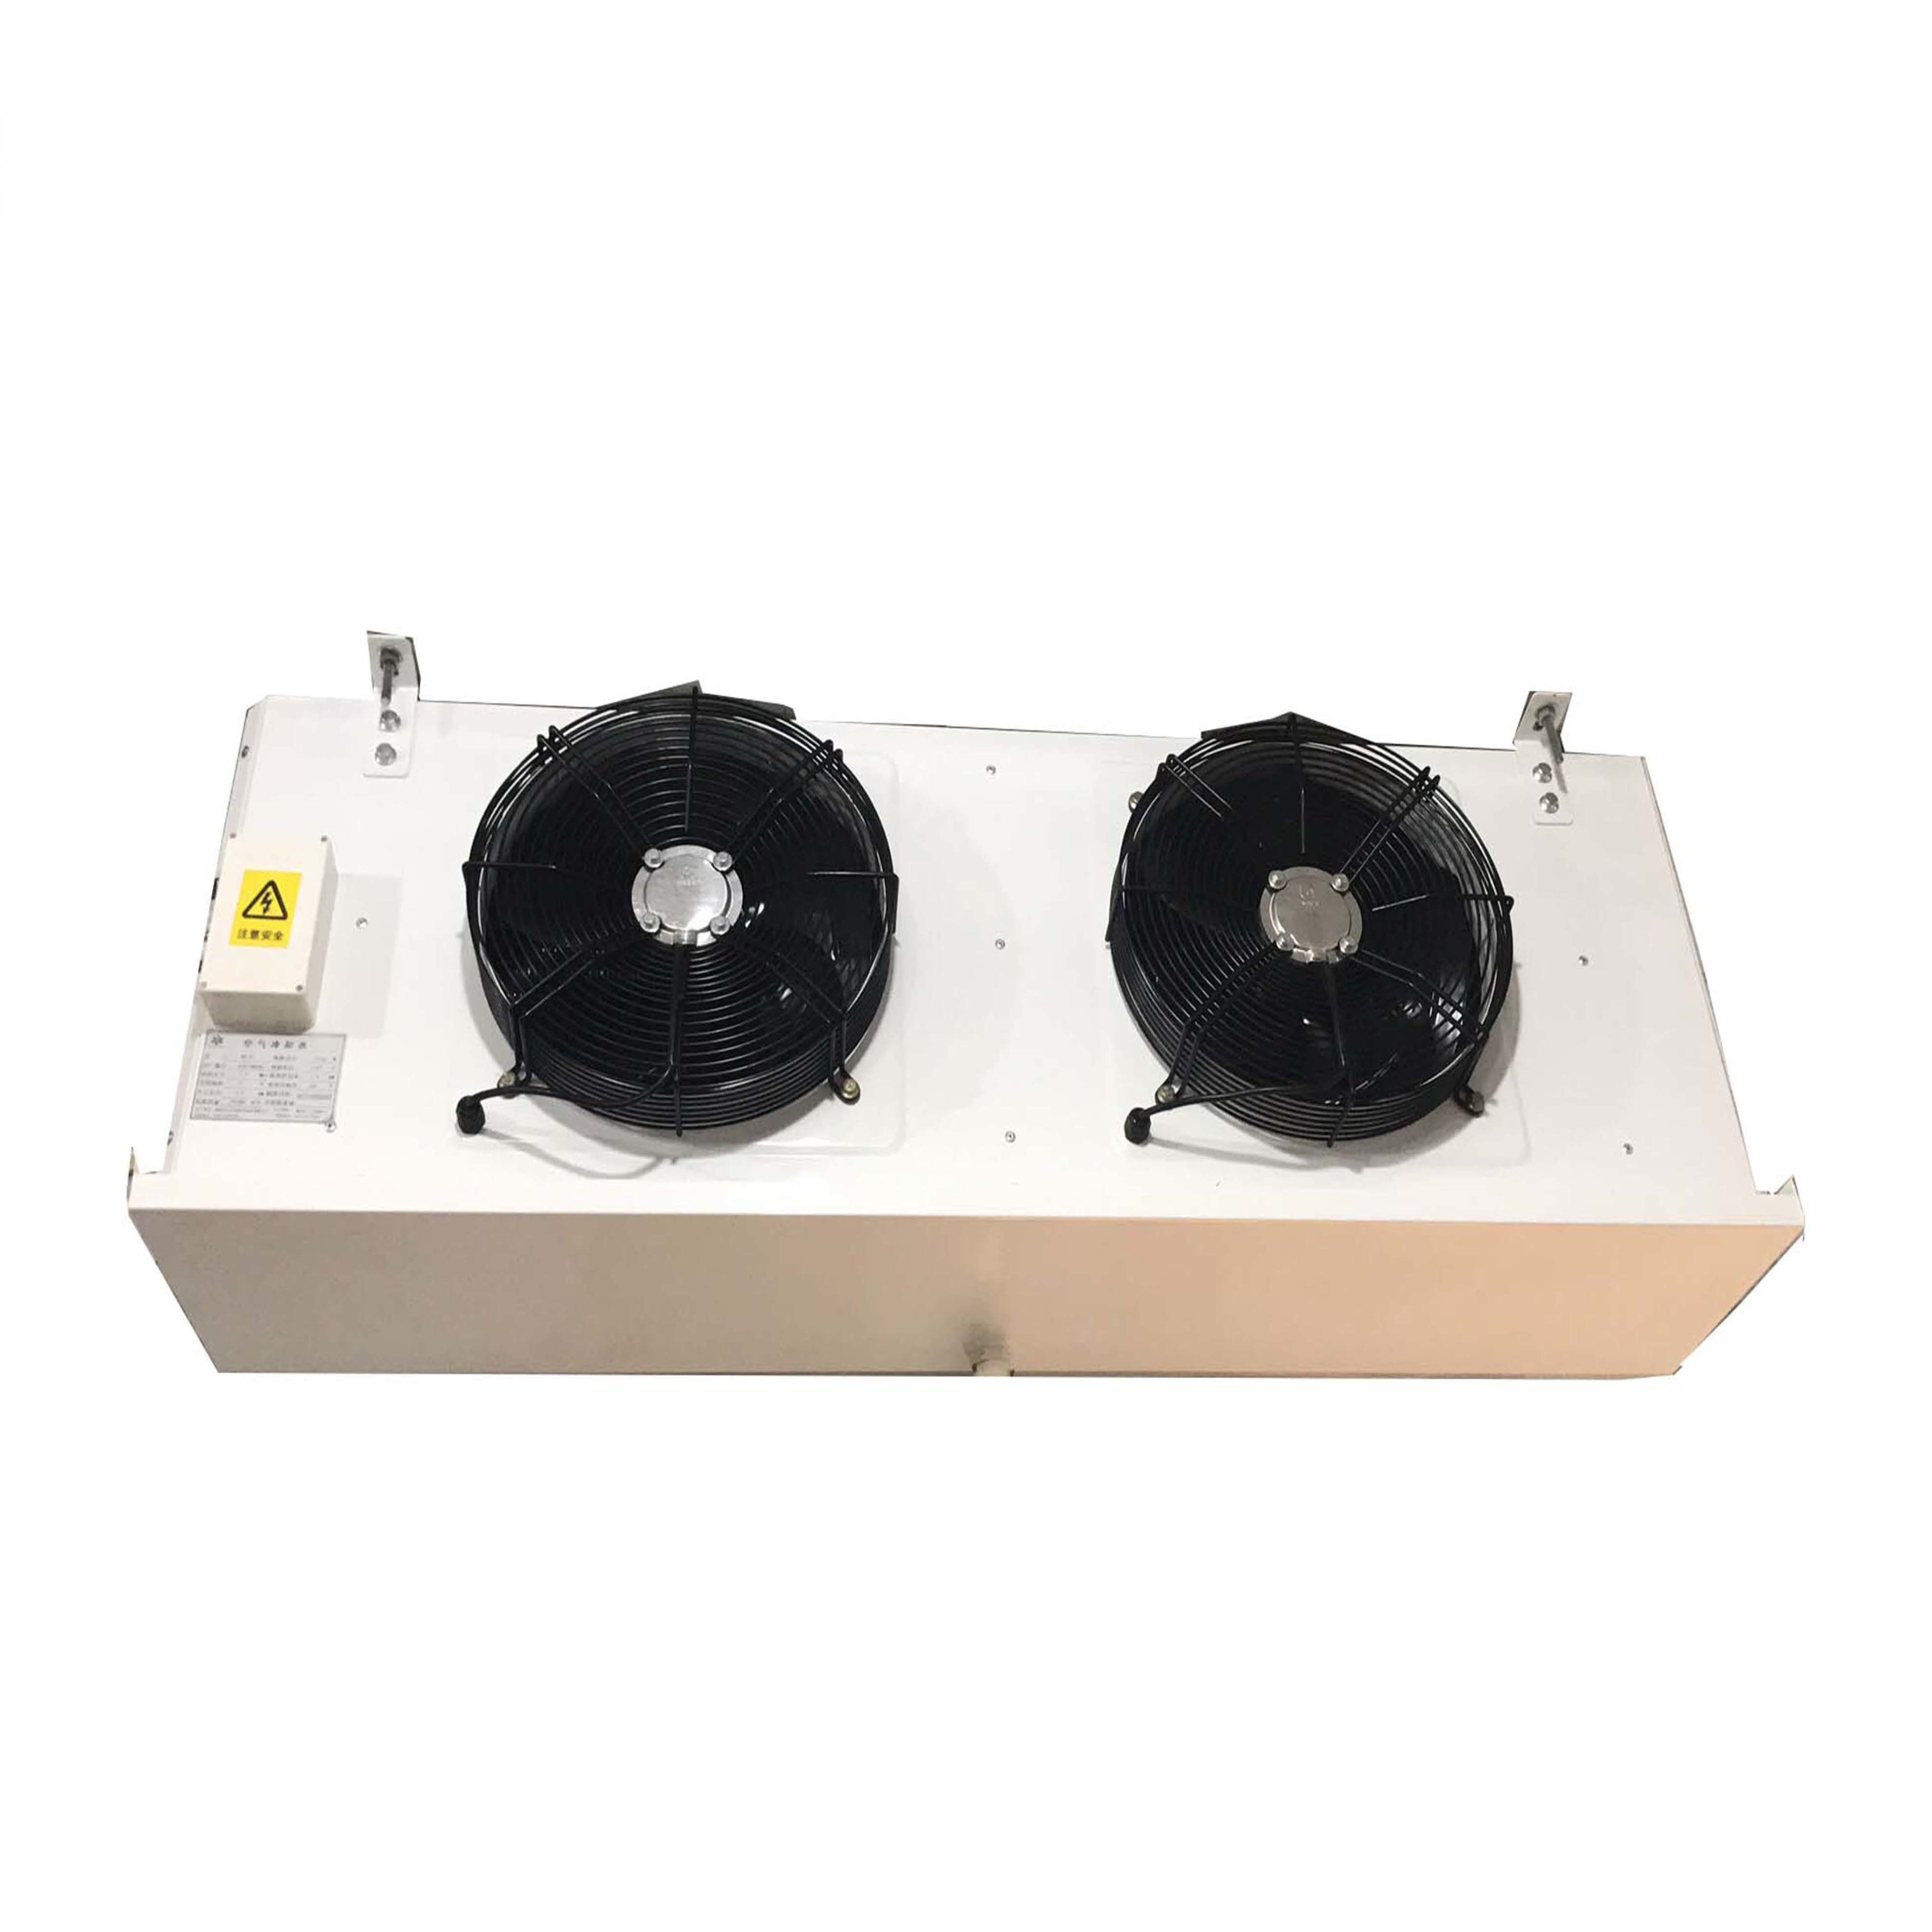 Cold Room Equipment Air-Cooled Evaporative Air Cooler